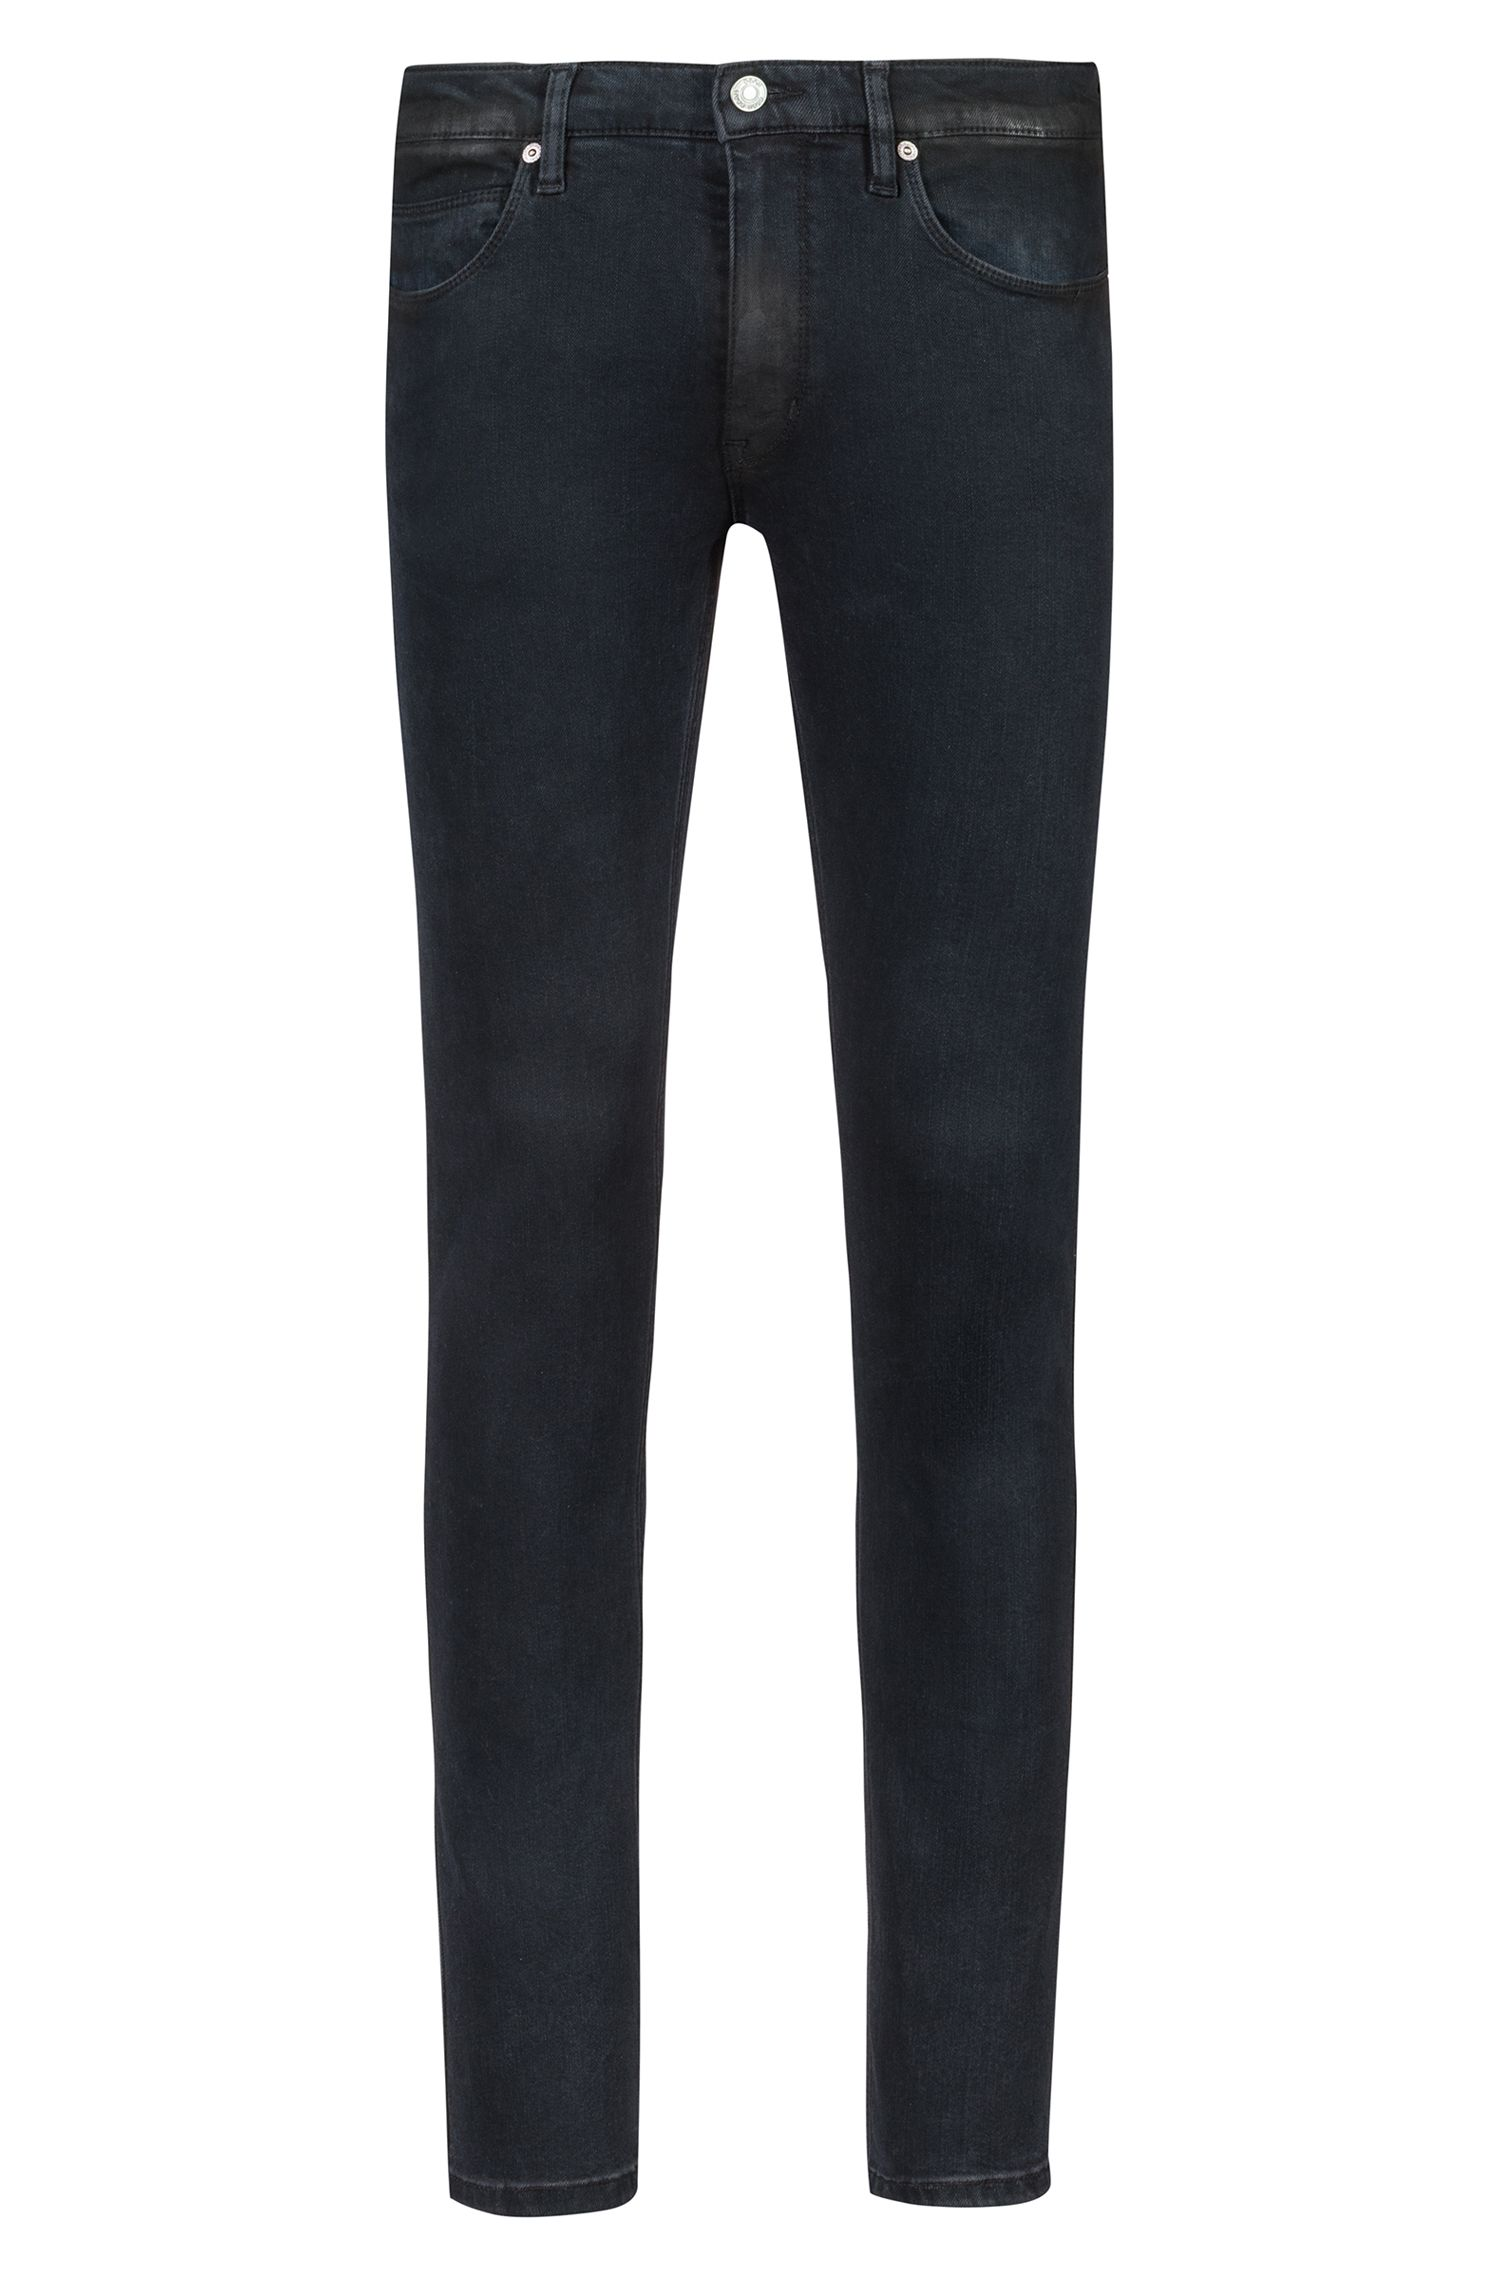 Skinny-fit jeans in black stretch denim, Black